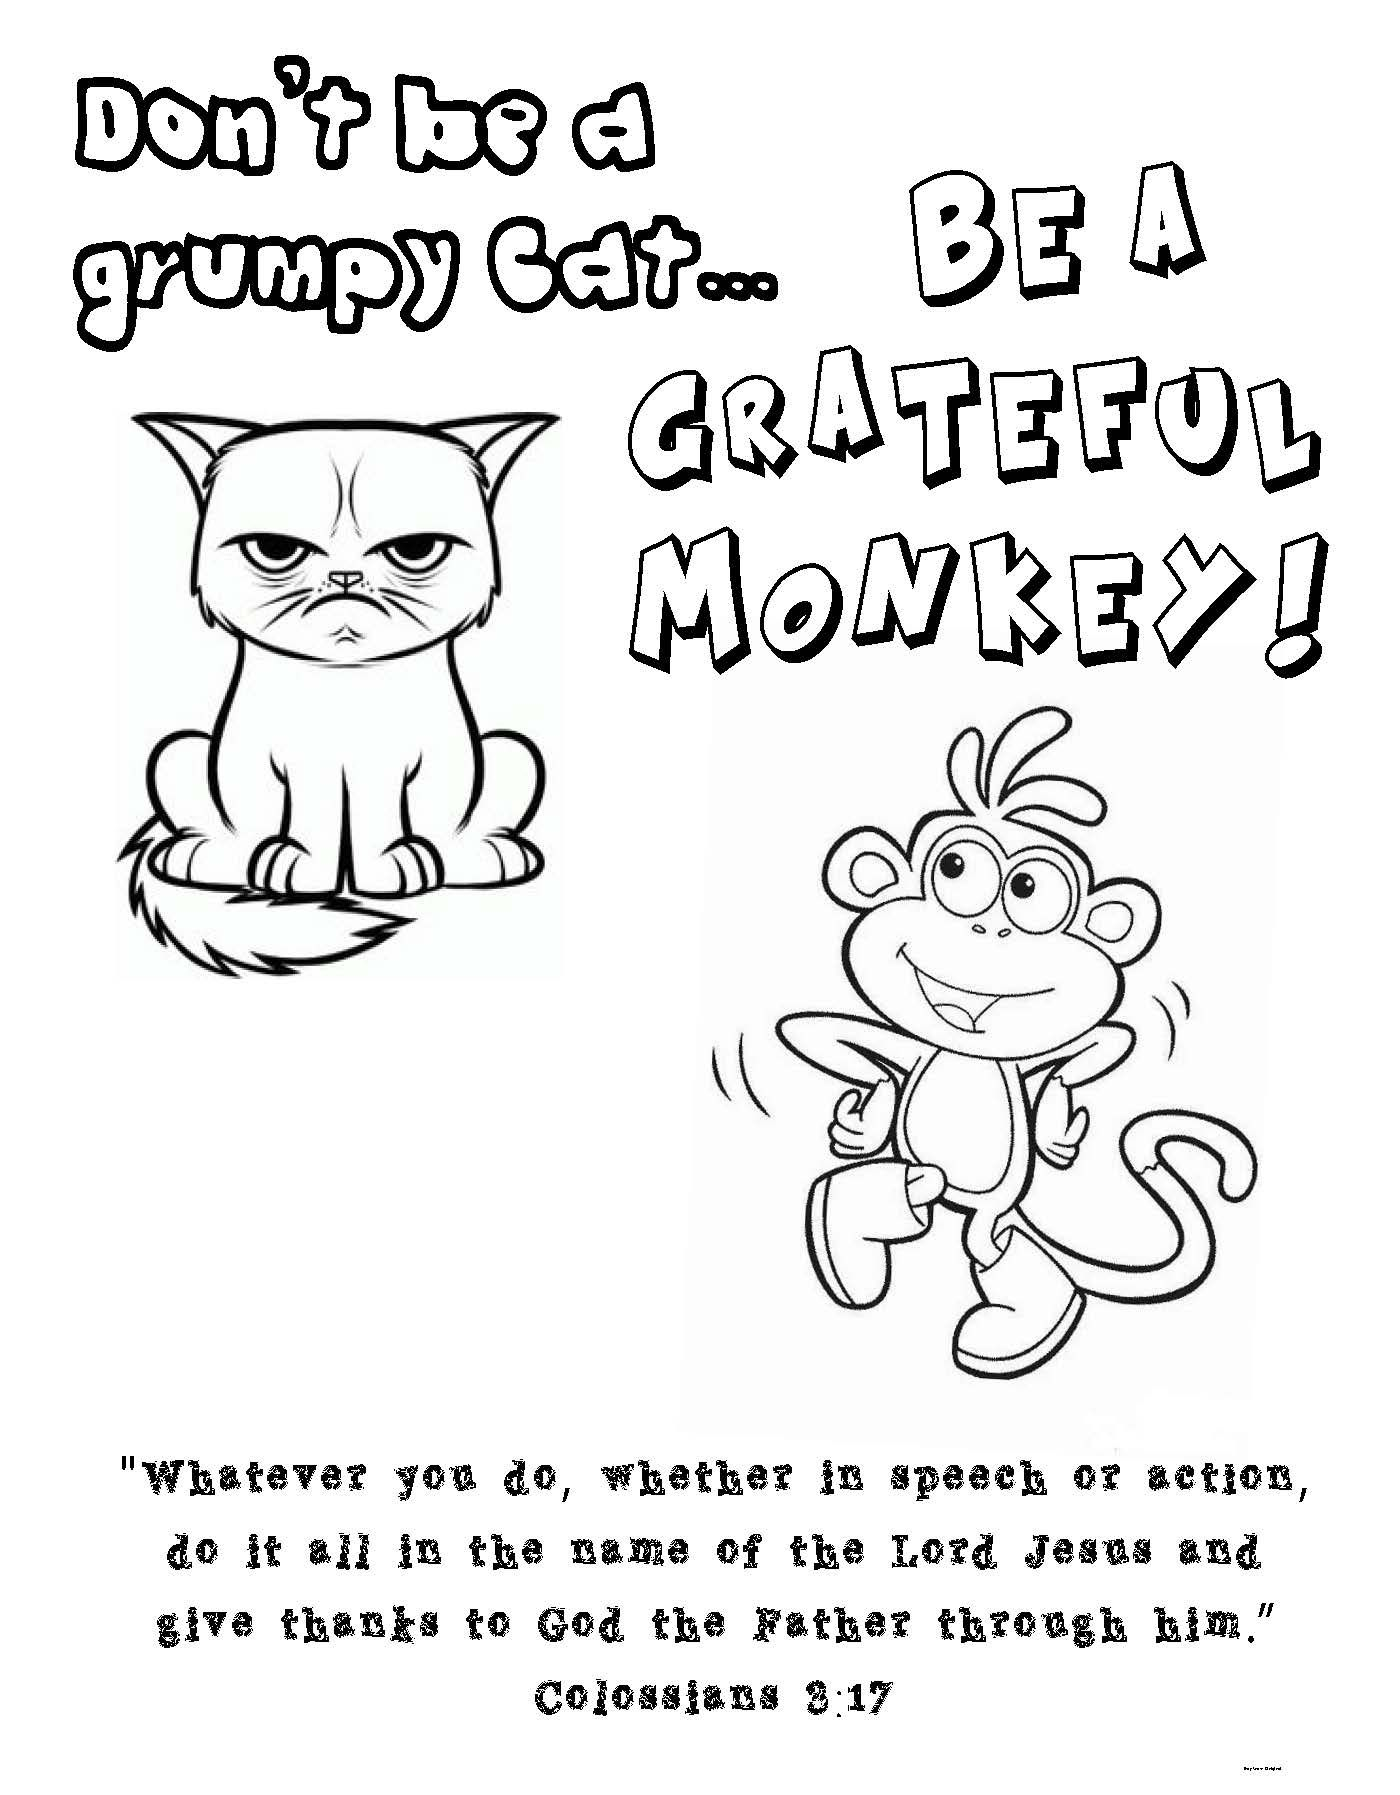 Colossians 3 17 Coloring Page Grumpy Cat Boots From Dora